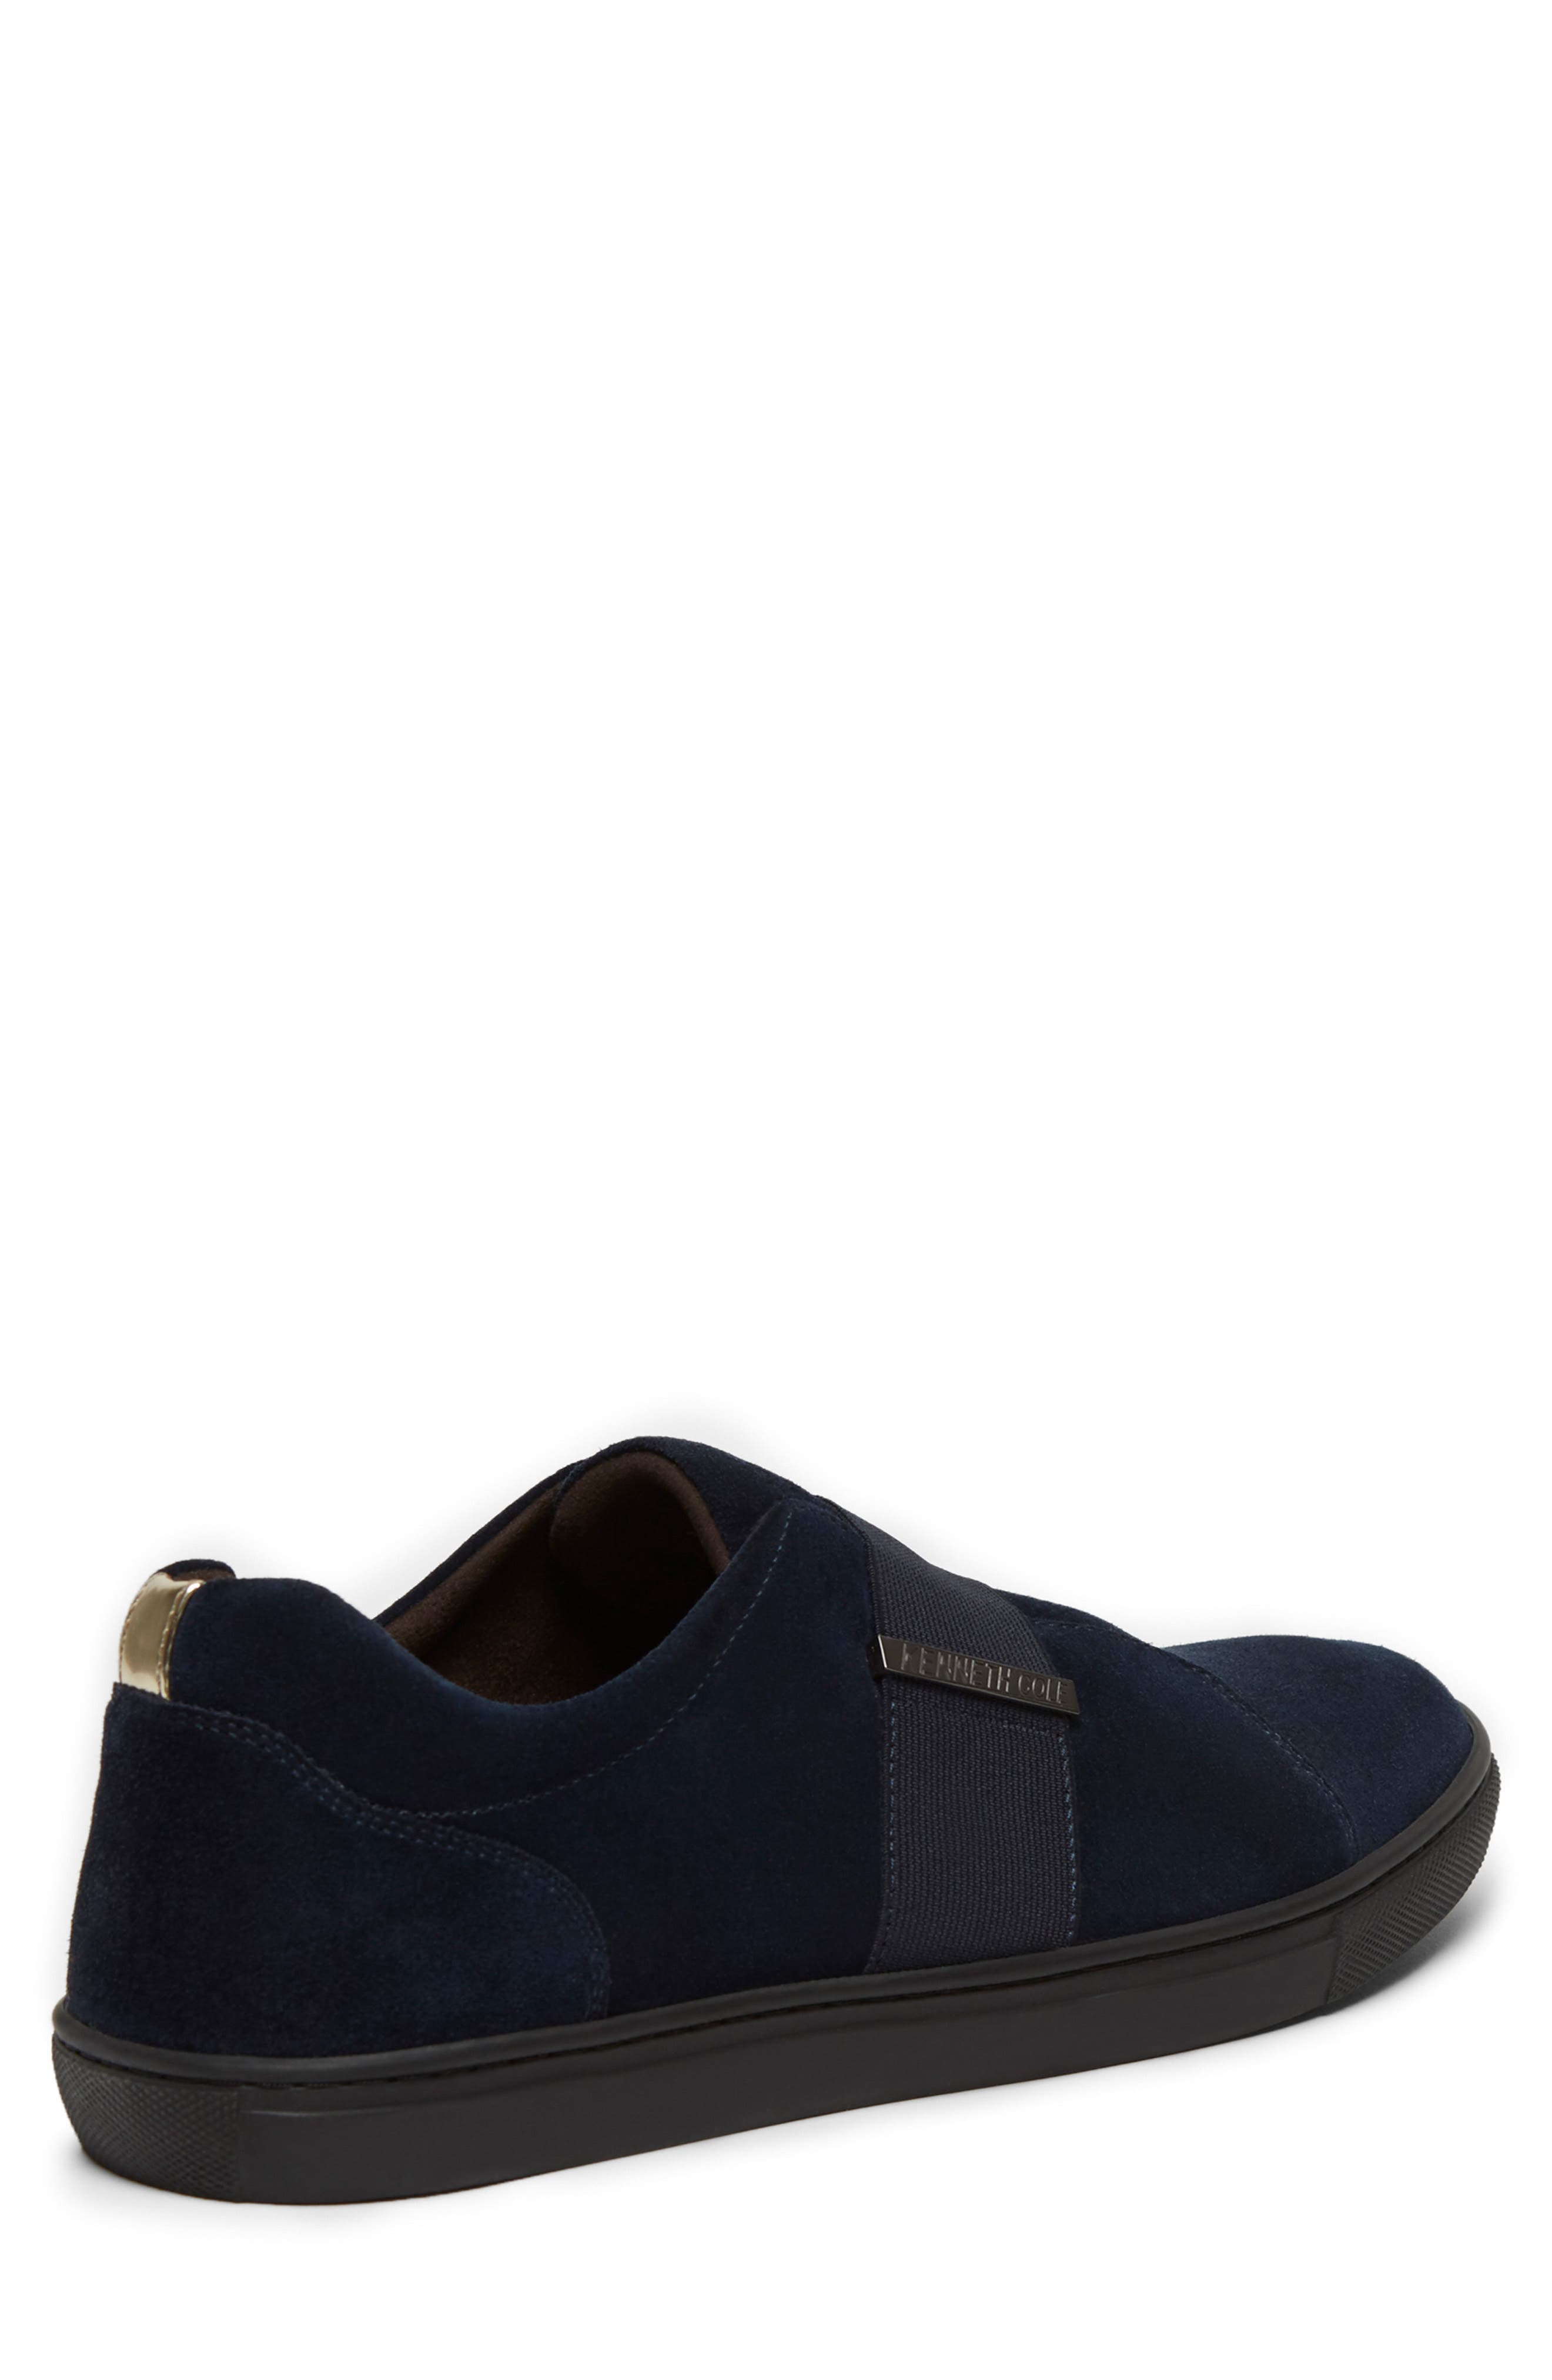 KENNETH COLE NEW YORK, Kam Slip-On, Alternate thumbnail 5, color, NAVY SUEDE